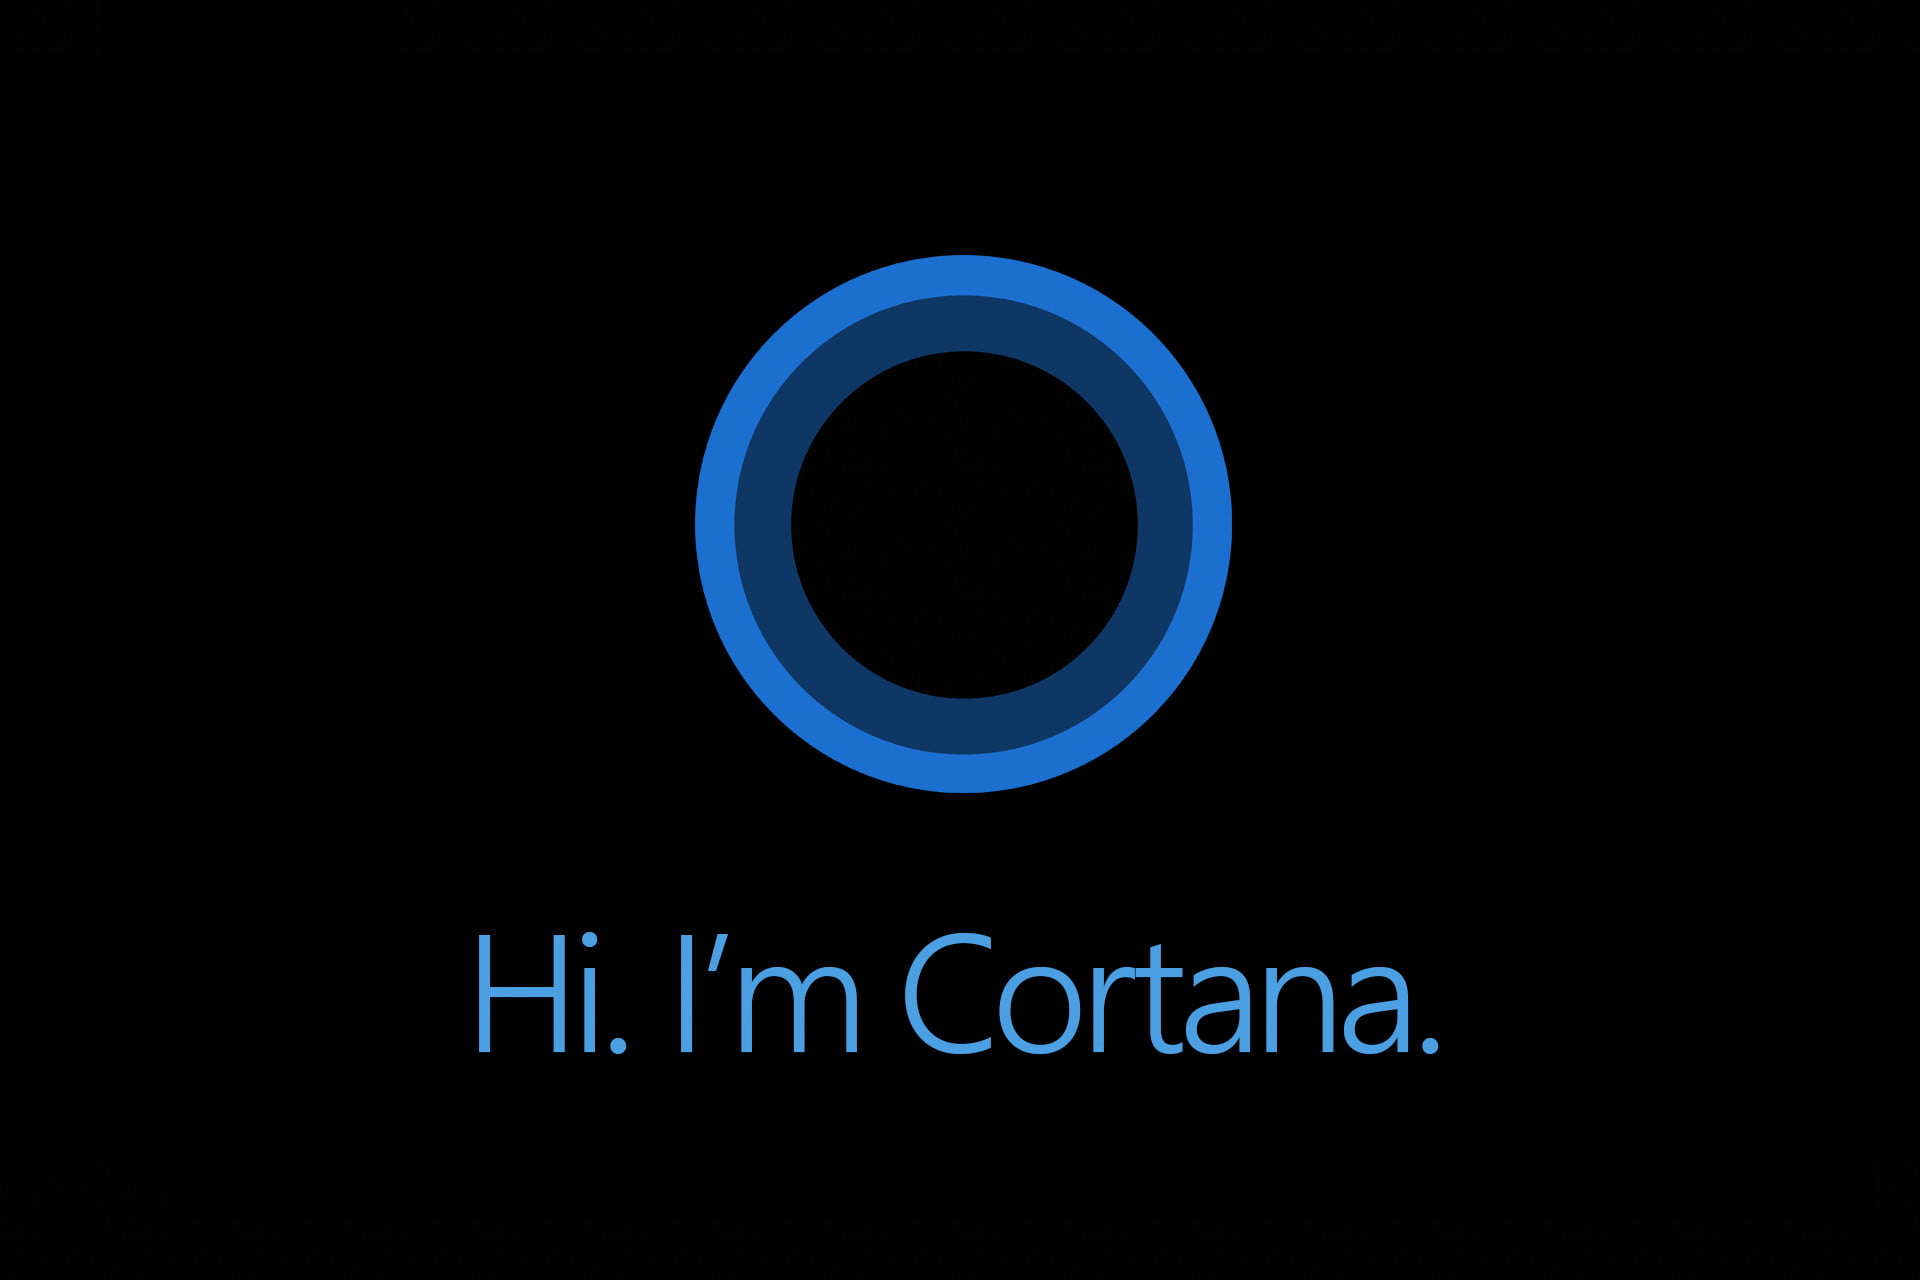 Cortana breaks up with Android and iOS to go steady with Microsoft 365